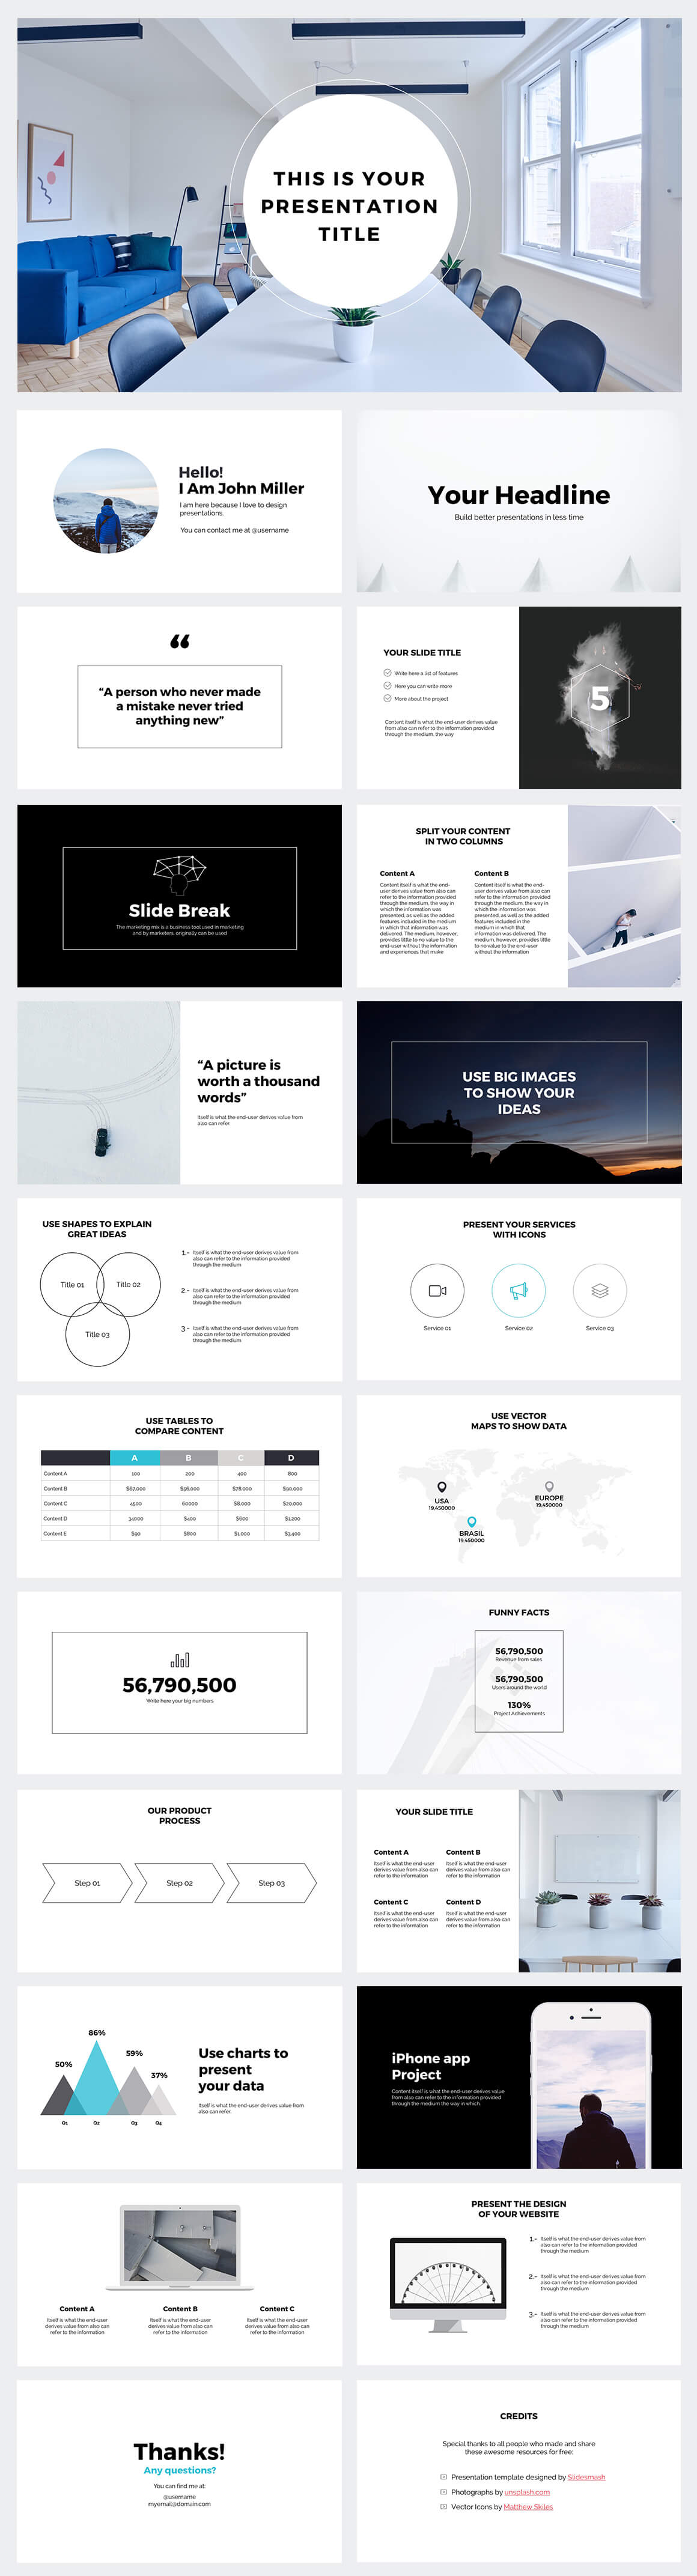 business strategy powerpoint template large-preview